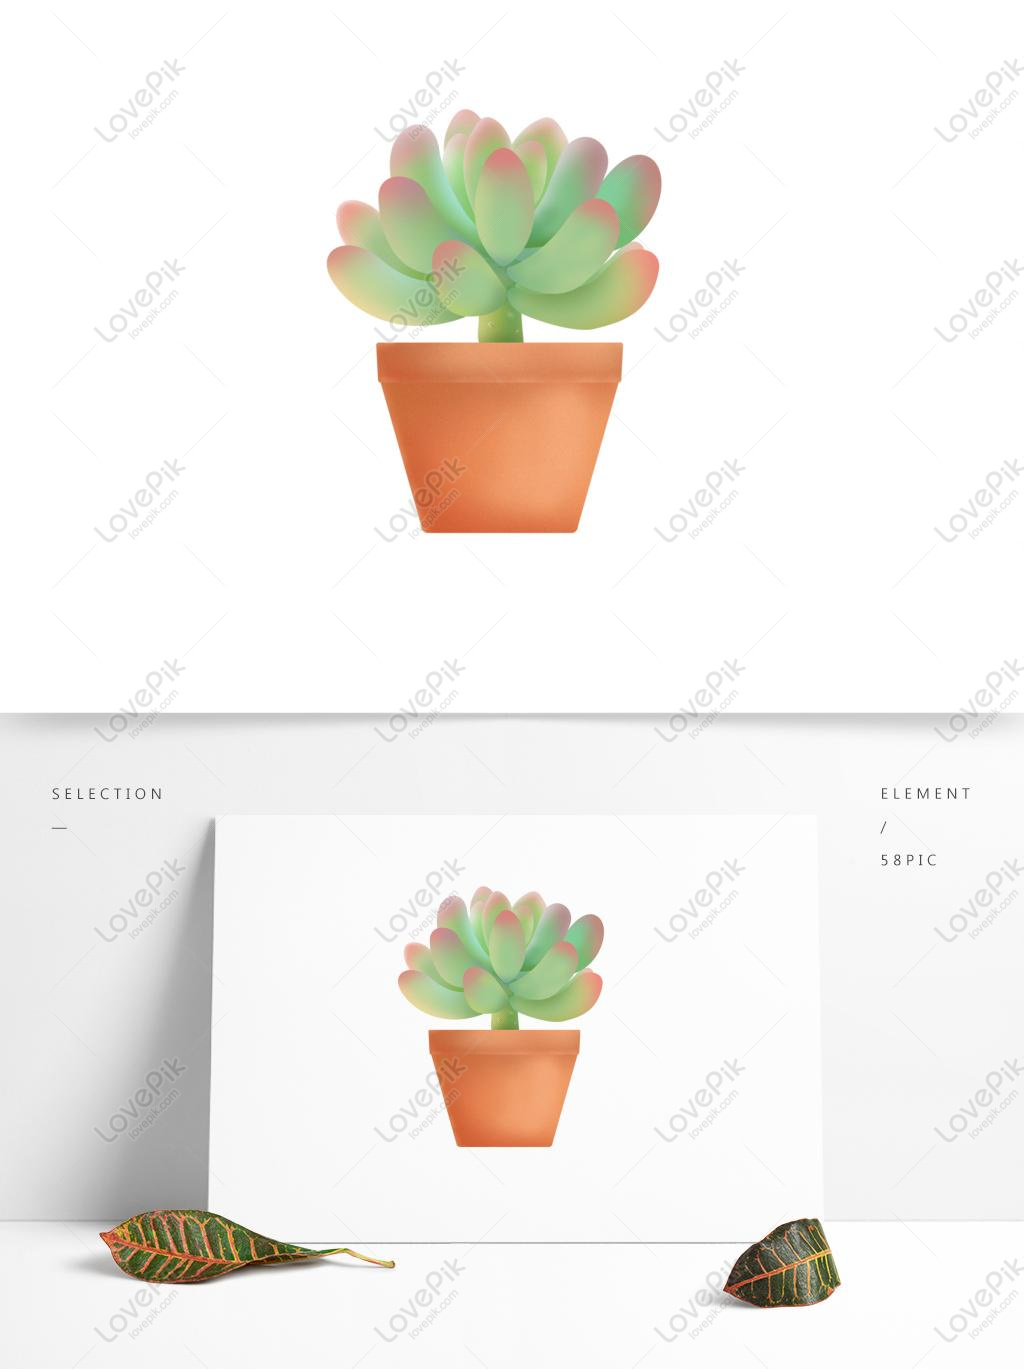 Green Plant Hand Painted Succulents Psd Images Free Download 1369 1024 Px Lovepik Id 732333021